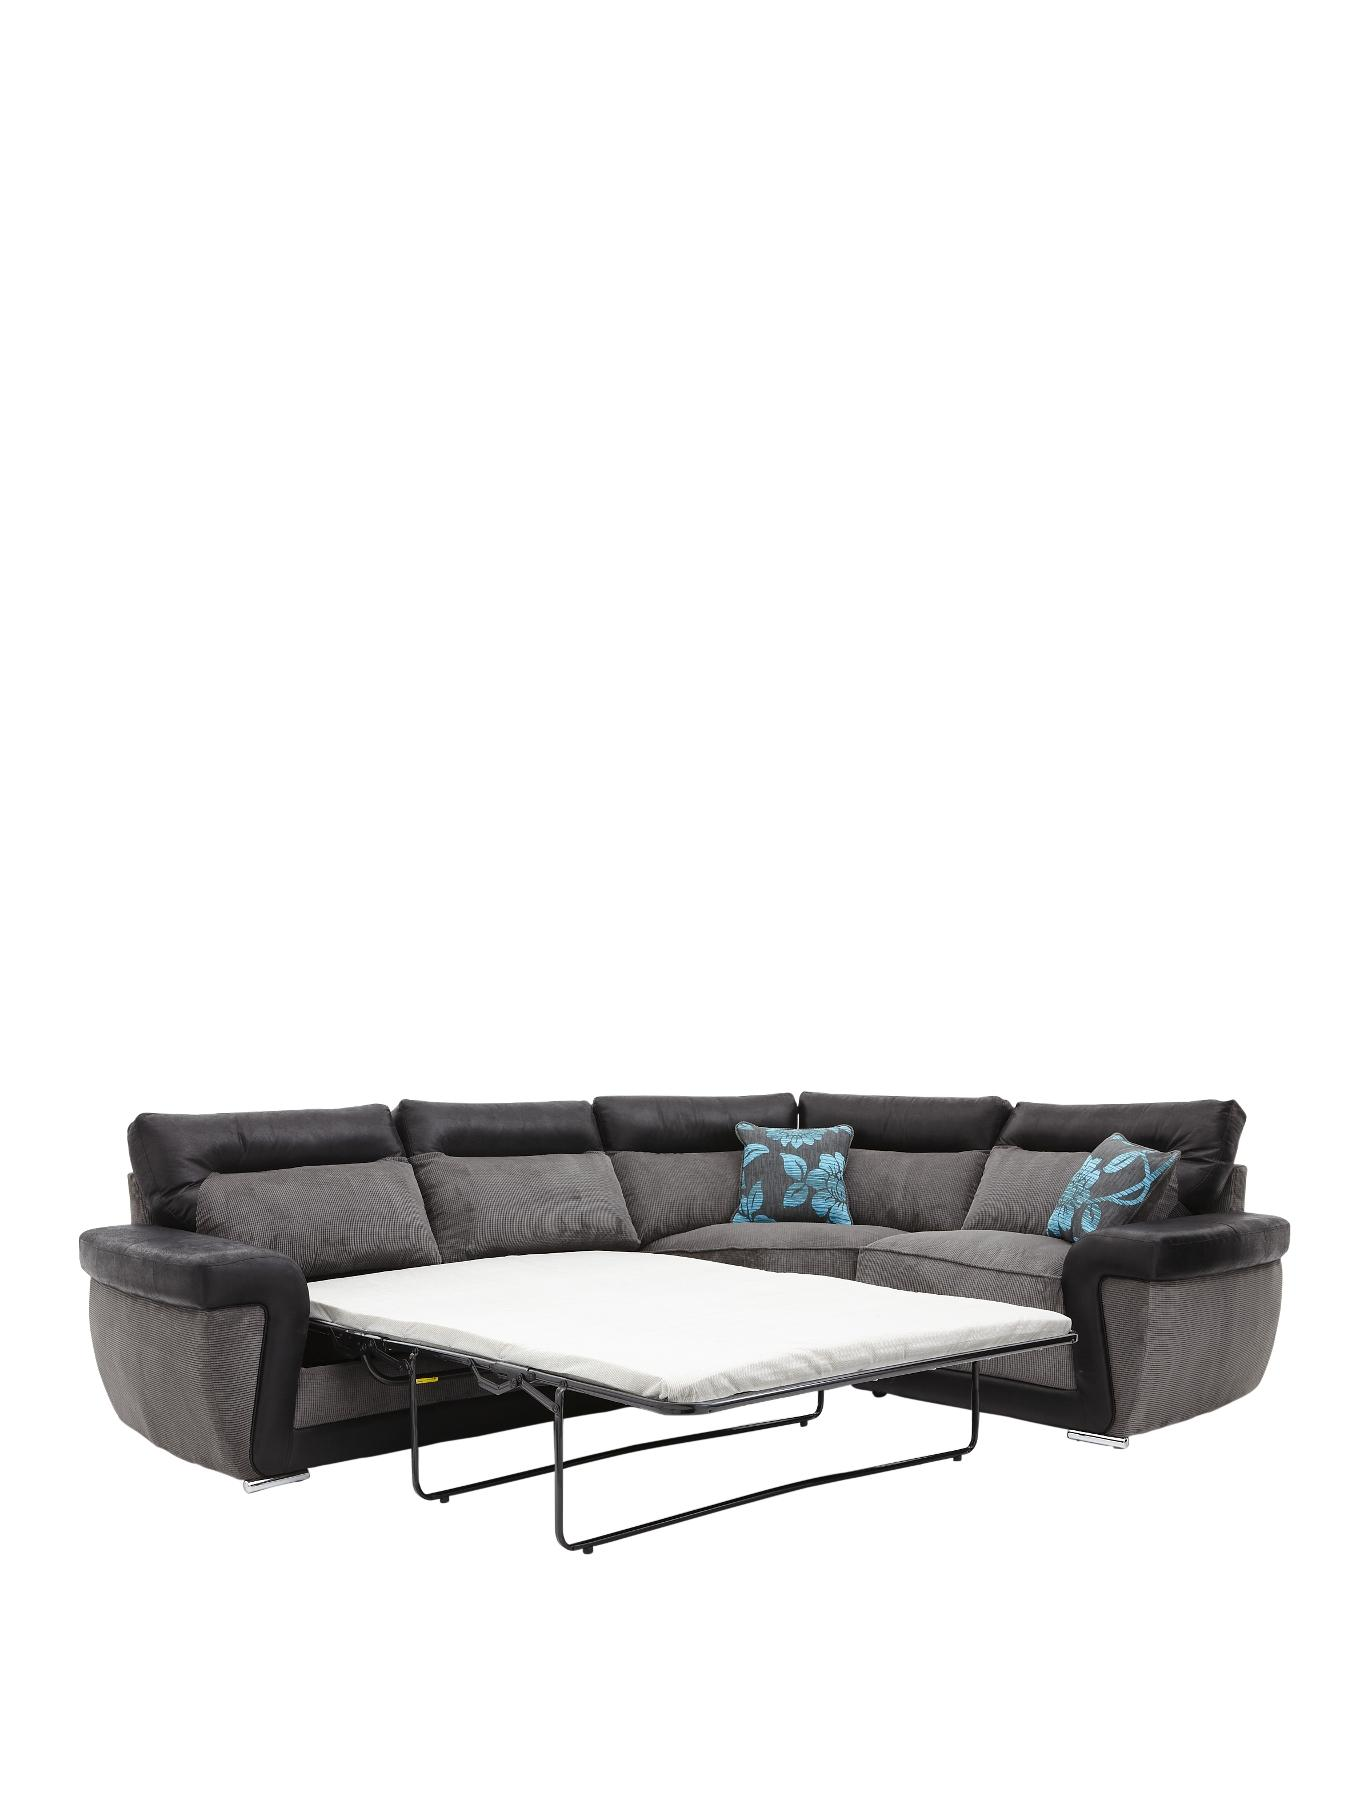 Tamsin Right Hand Corner Group with Sofa Bed BlackChocolate